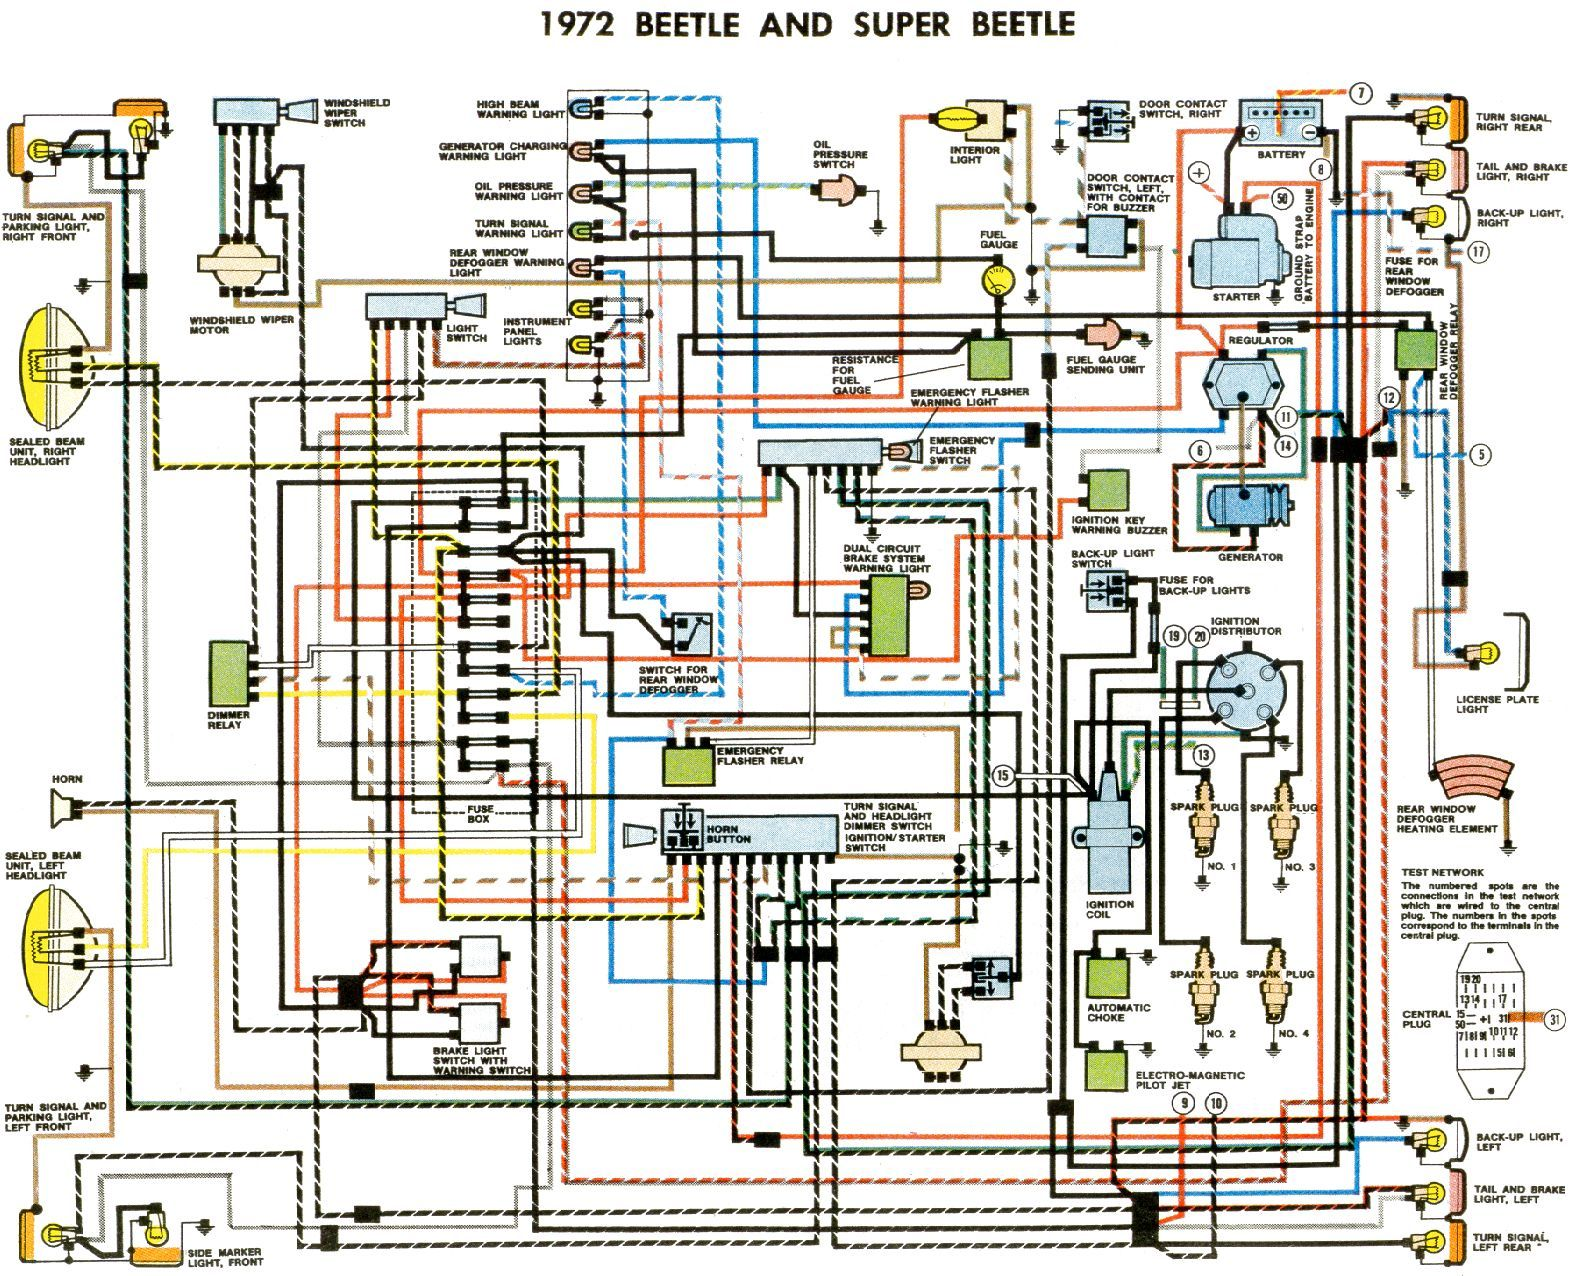 72 wiring diagram.jpg; 1582 x 1276 (@46%) | Vw super beetle, Diagram  design, Volkswagen carPinterest